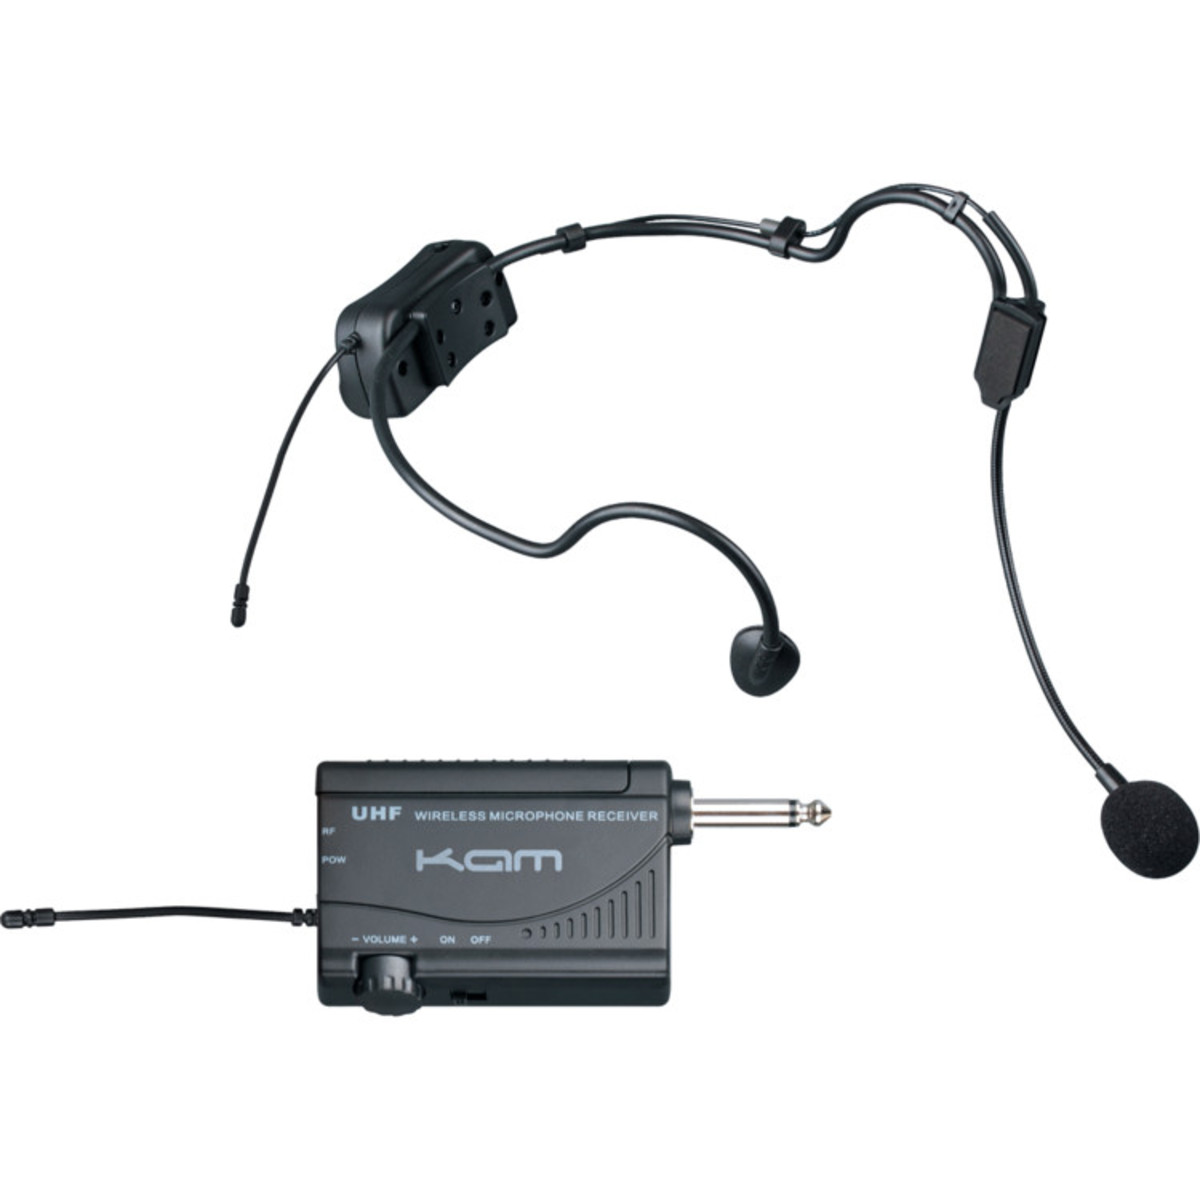 kam kwm1900 hs uhf wireless head set microphone system at gear4music. Black Bedroom Furniture Sets. Home Design Ideas